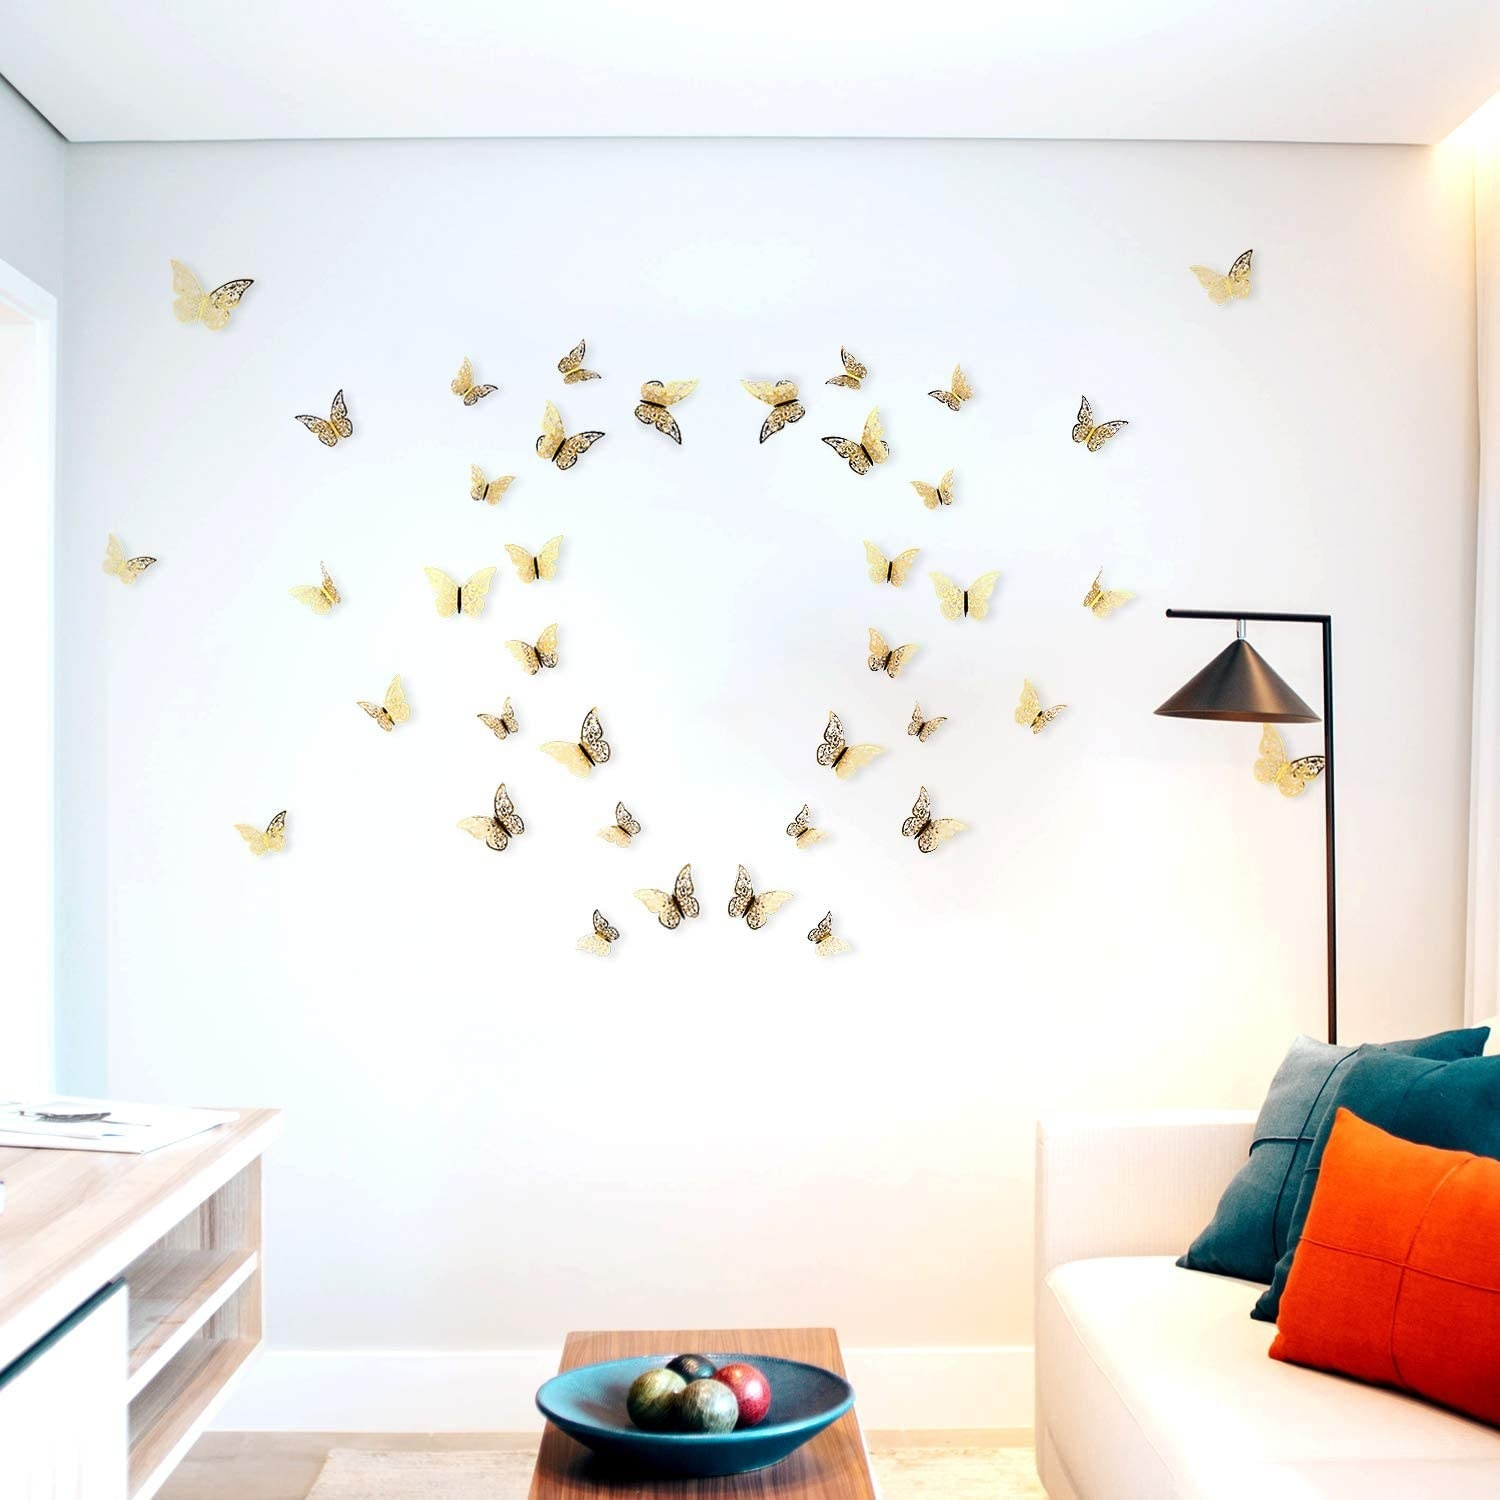 the butterfly stickers on a wall